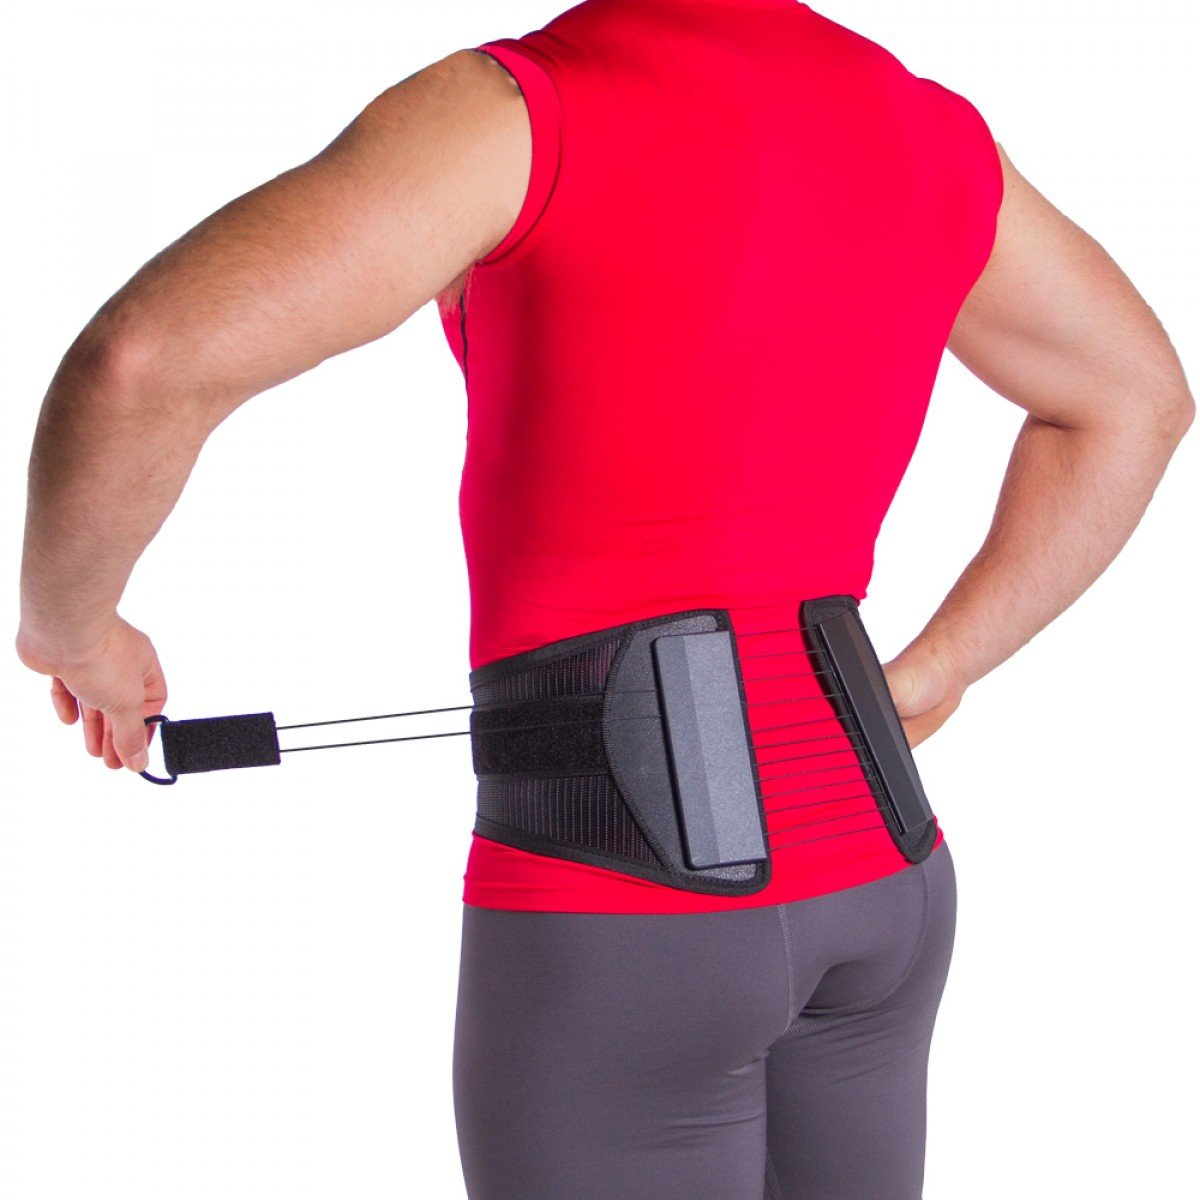 SPINE Sport Back Brace - Best Lumbar Support for Active People with Back Pain, Exercising, Working Outside, Walking and More (Small)